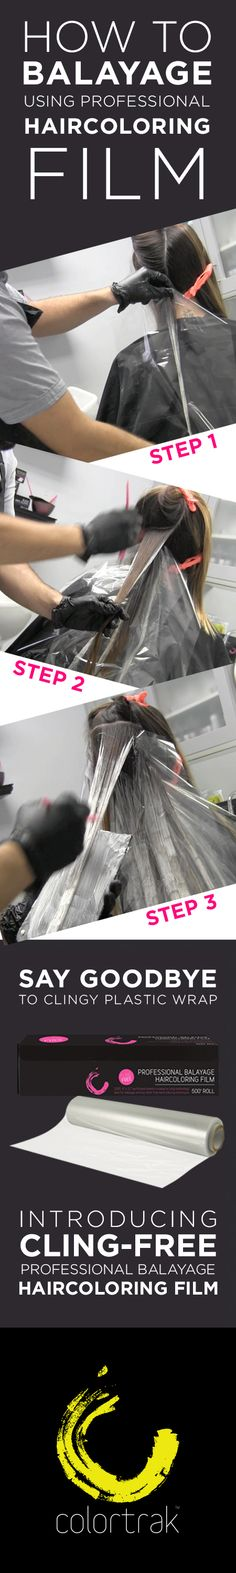 Say GOODBYE to clingy plastic wrap and HELLO to CLING-FREE Professional Balayage Haircoloring Film! Finally no more sticky messes or unpredictable results, and best of all, no product waste! #hairstylist #salon #haircolorformulas #professionalhair